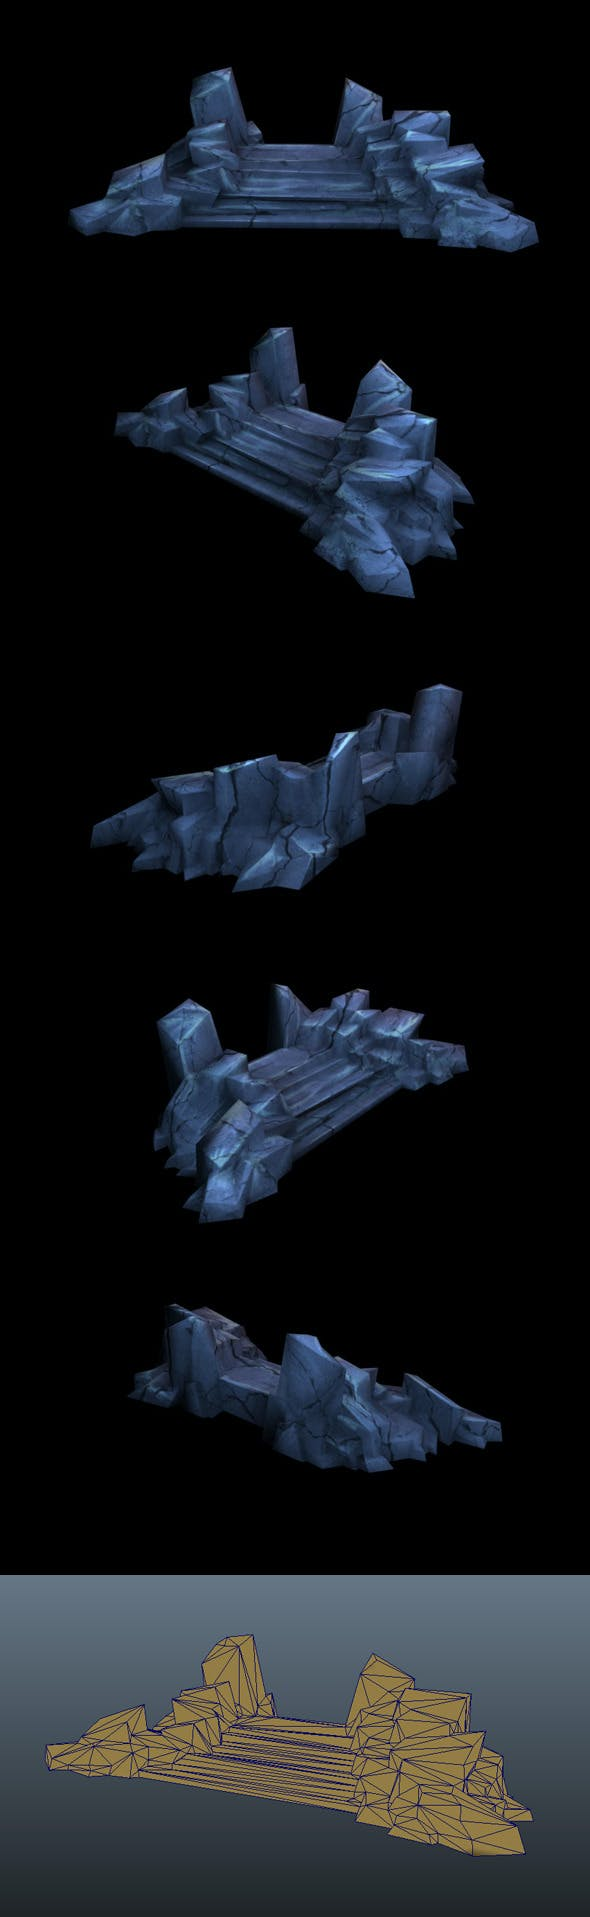 Low Poly Stone Stairs - 3DOcean Item for Sale